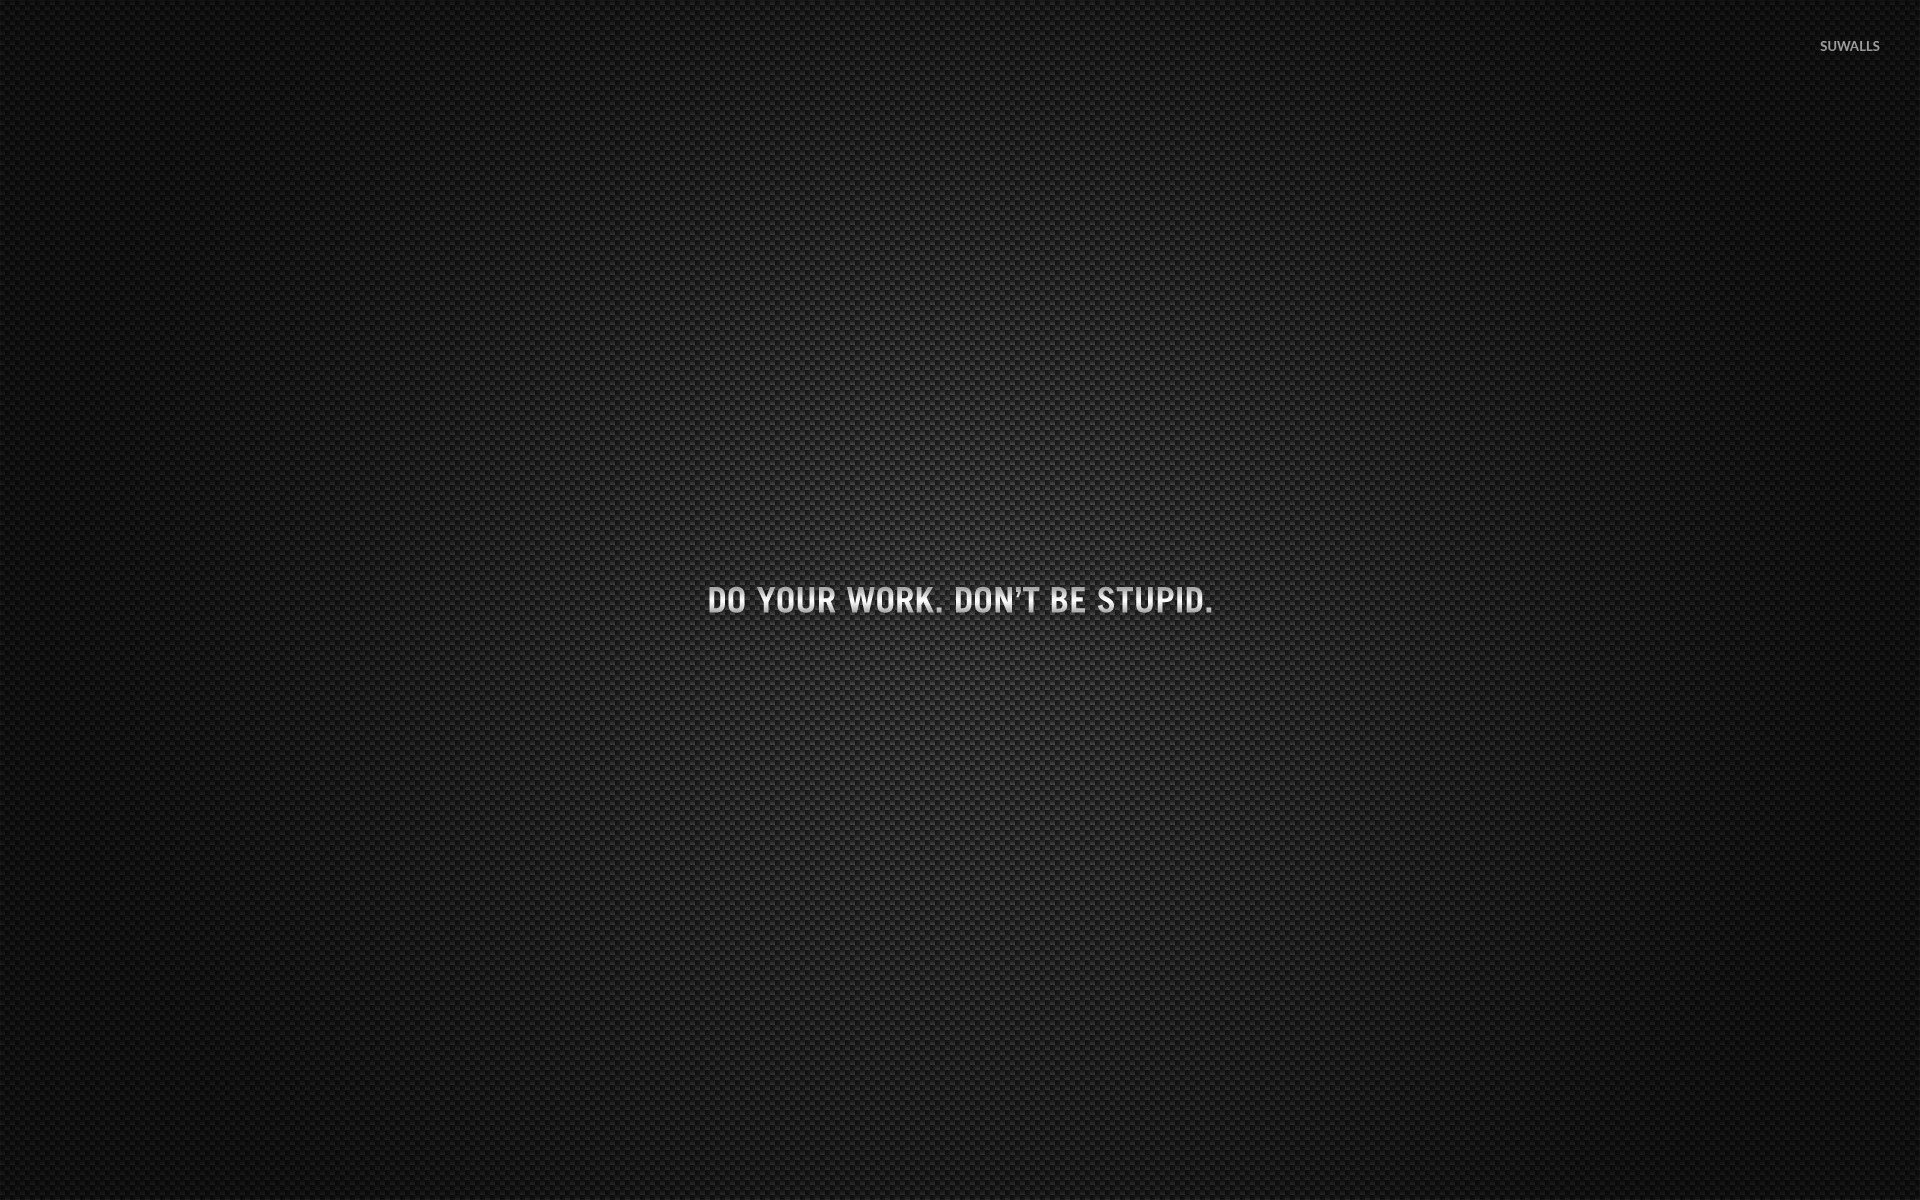 Do your work wallpaper typography wallpapers 53511 do your work wallpaper altavistaventures Image collections